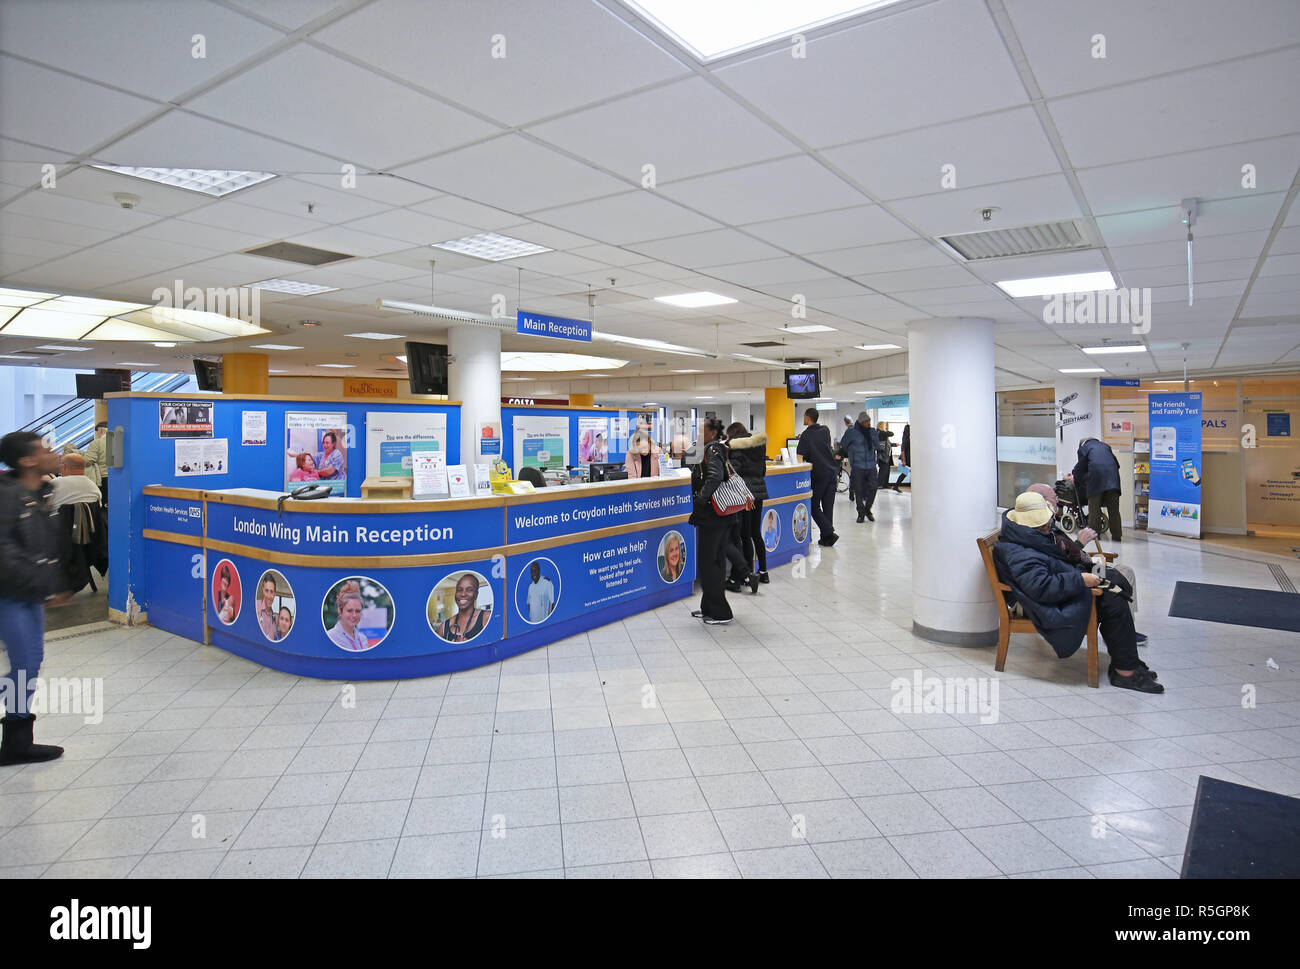 The main entrance to Croydon University Hospital in South London, UK. A typical regional hospital comprising Victorian buildings and modern extensions - Stock Image